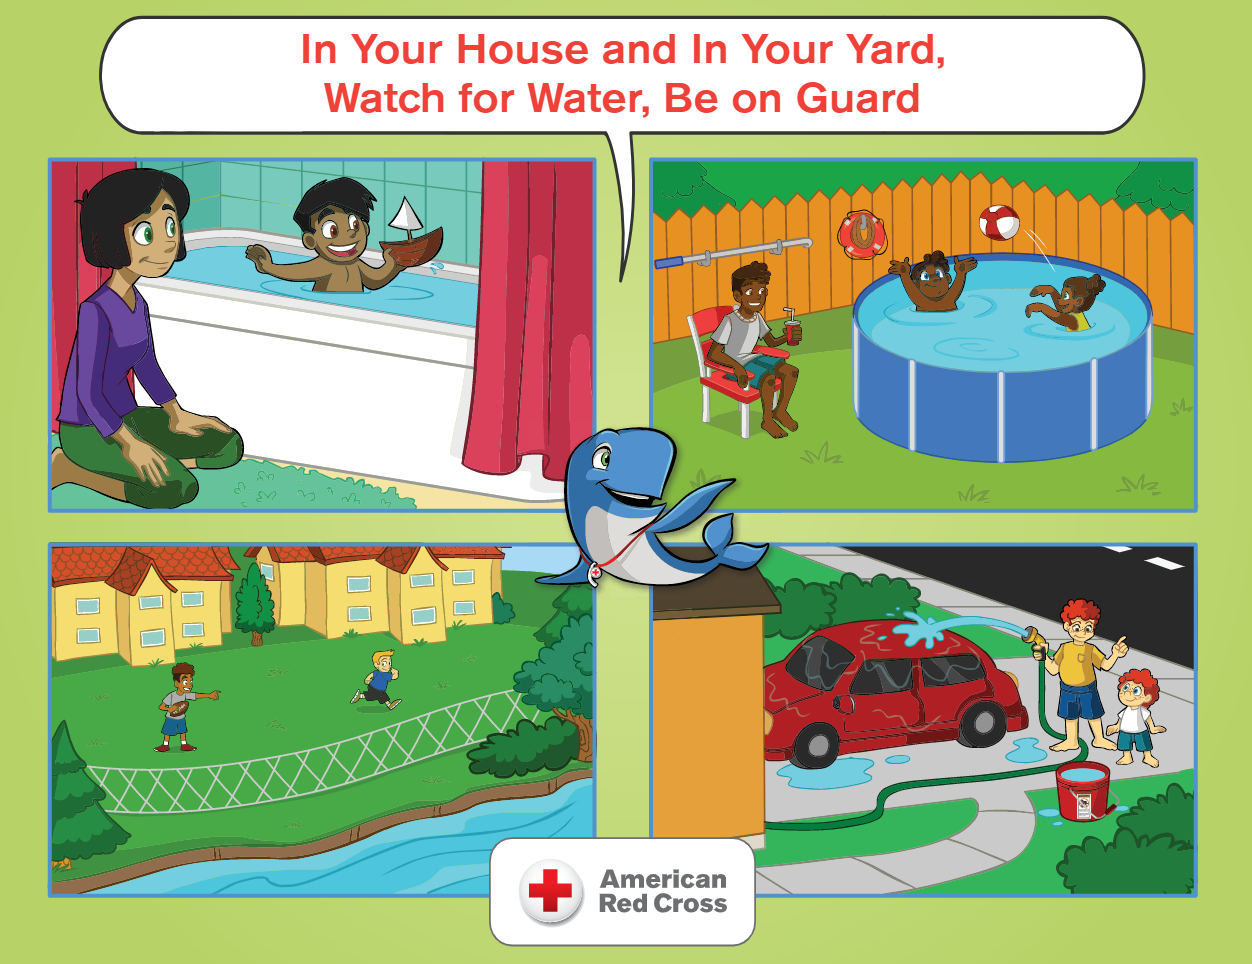 In Your House and In Your Yard, Watch for Water, Be on Guard